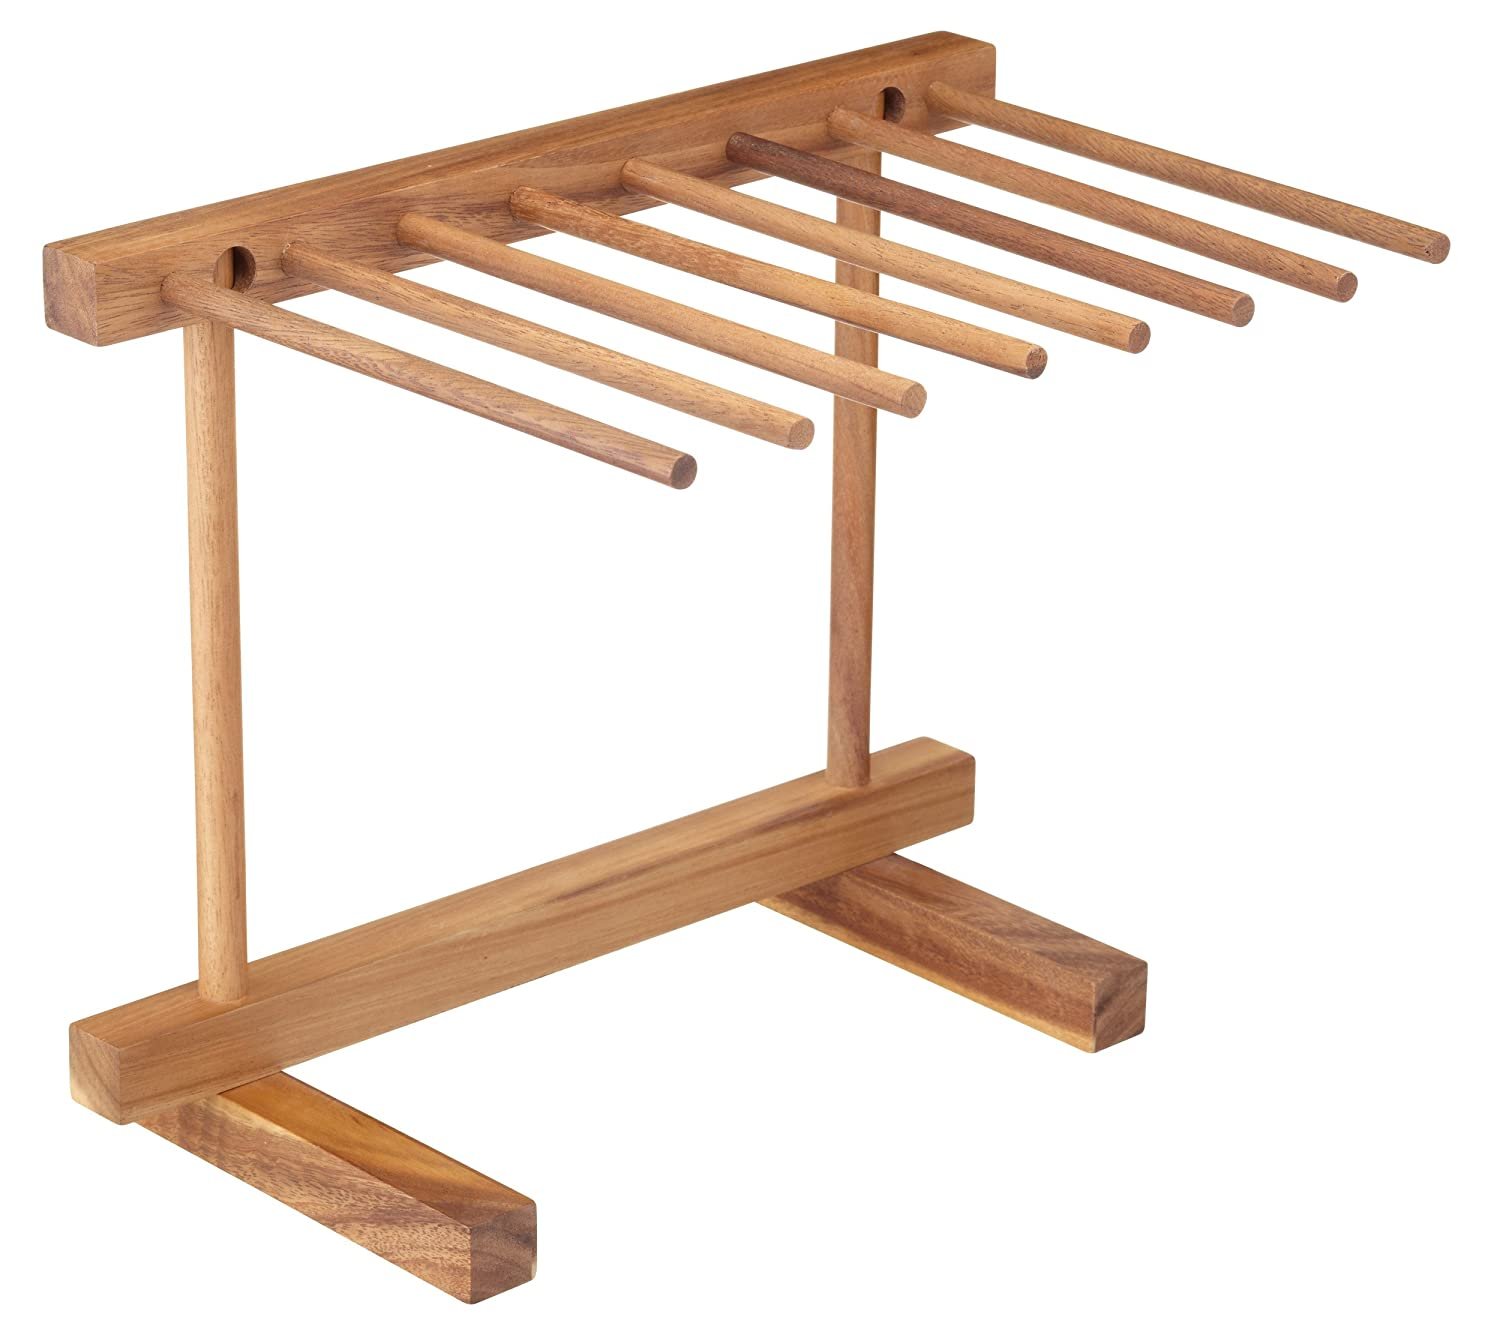 KitchenCraft World of Flavours Collapsible Wooden Pasta Drying Rack 14 x 12 x 9.5 - Brown Kitchen Craft WFITSTAND 36 x 30 x 23.5 cm